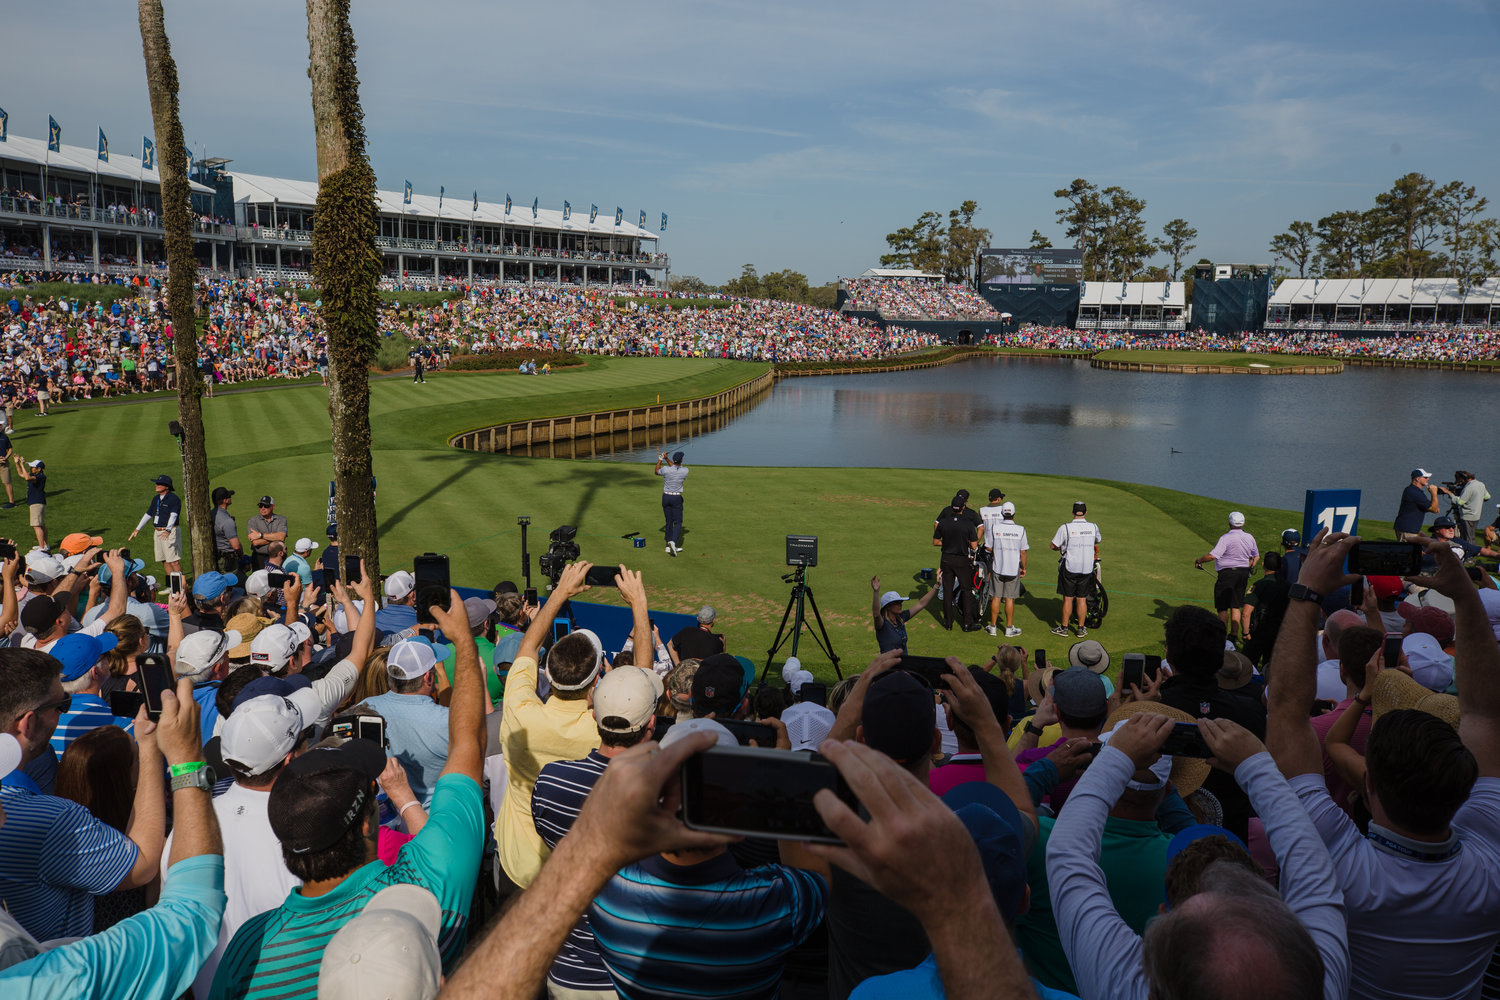 Tiger Woods attempts a shot at 17 on Friday of THE PLAYERS, where he ultimately carded a quadruple-bogey 7 on the 146-yard hole.